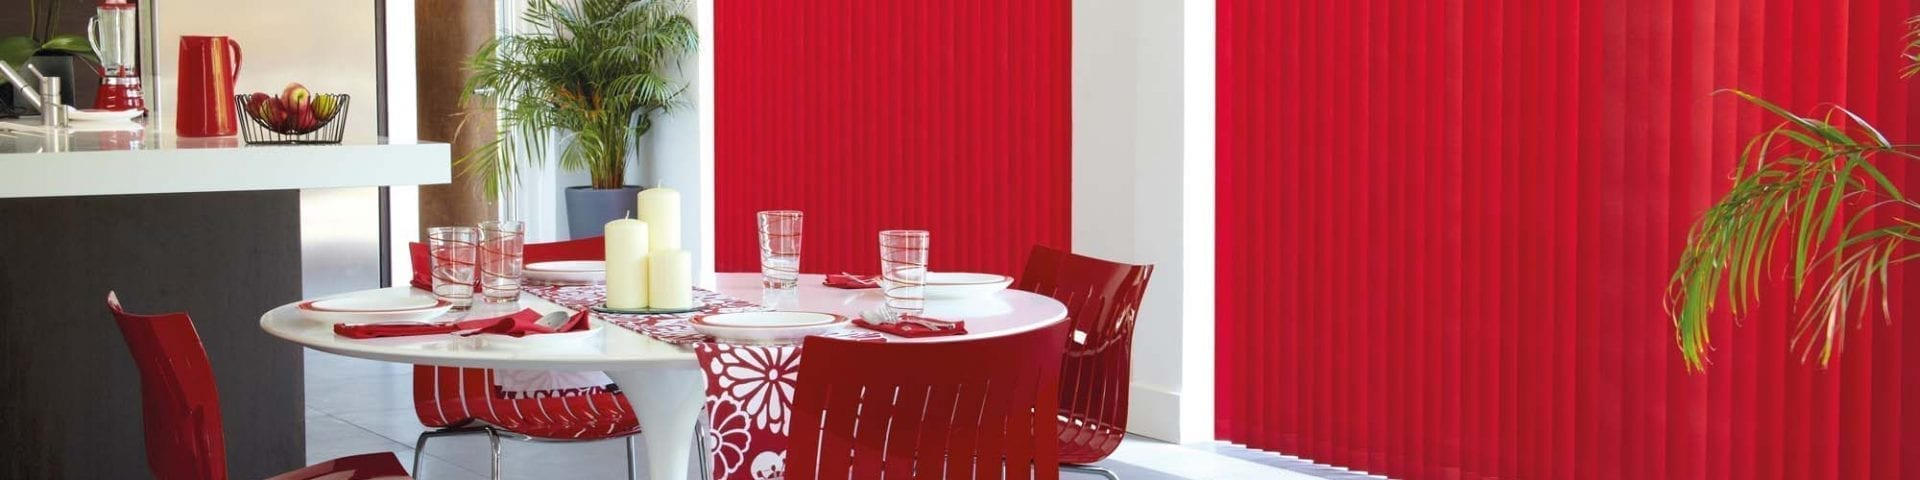 Vertical kitchen blinds from Insignia Blinds